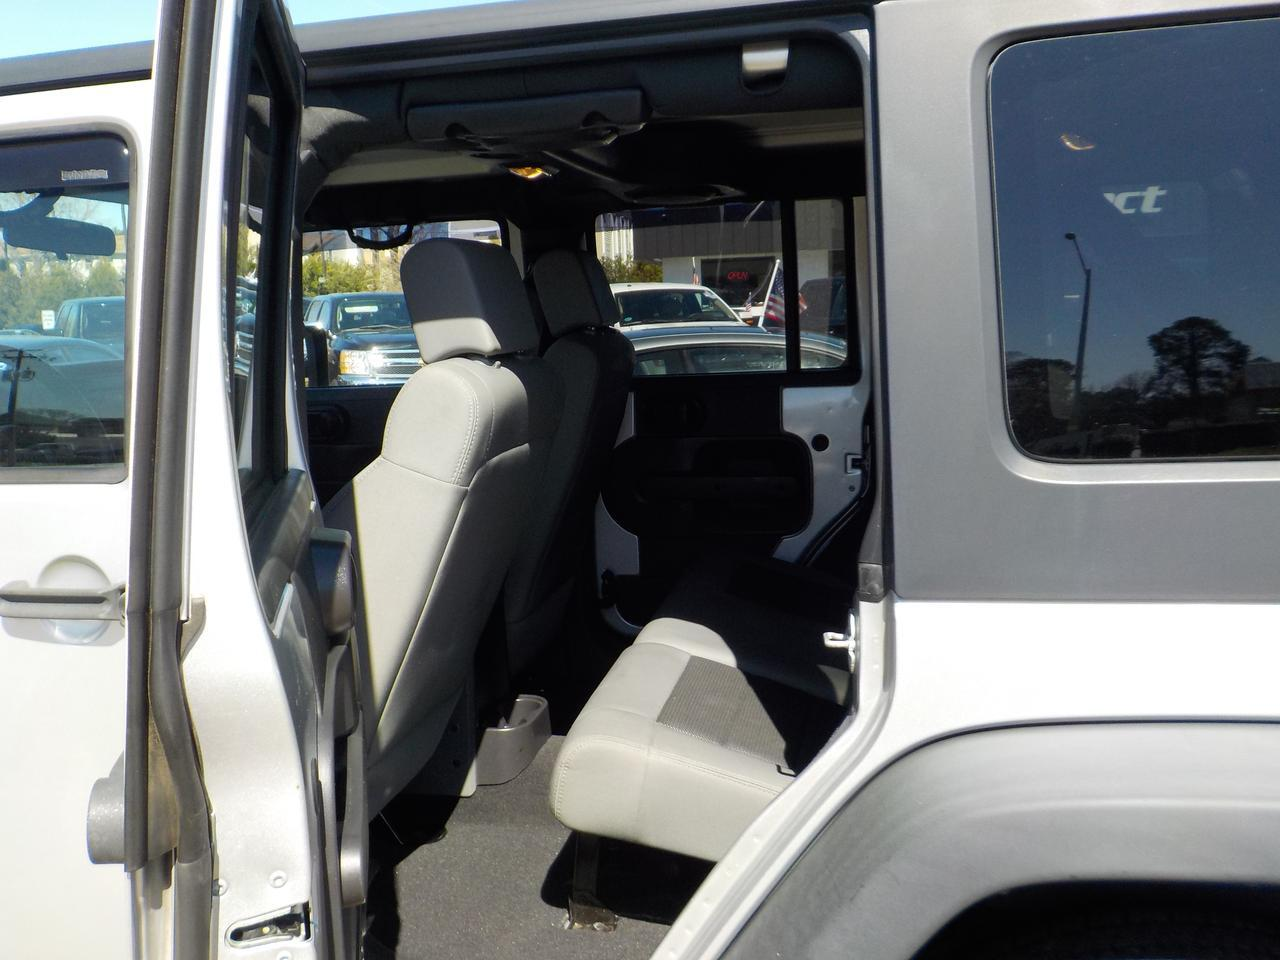 2009 JEEP WRANGLER UNLIMITED X 4X4, WARRANTY, HARD TOP, RUNNING BOARDS, KEYLESS ENTRY, SIRIUS RADIO, AUX PORT! Virginia Beach VA